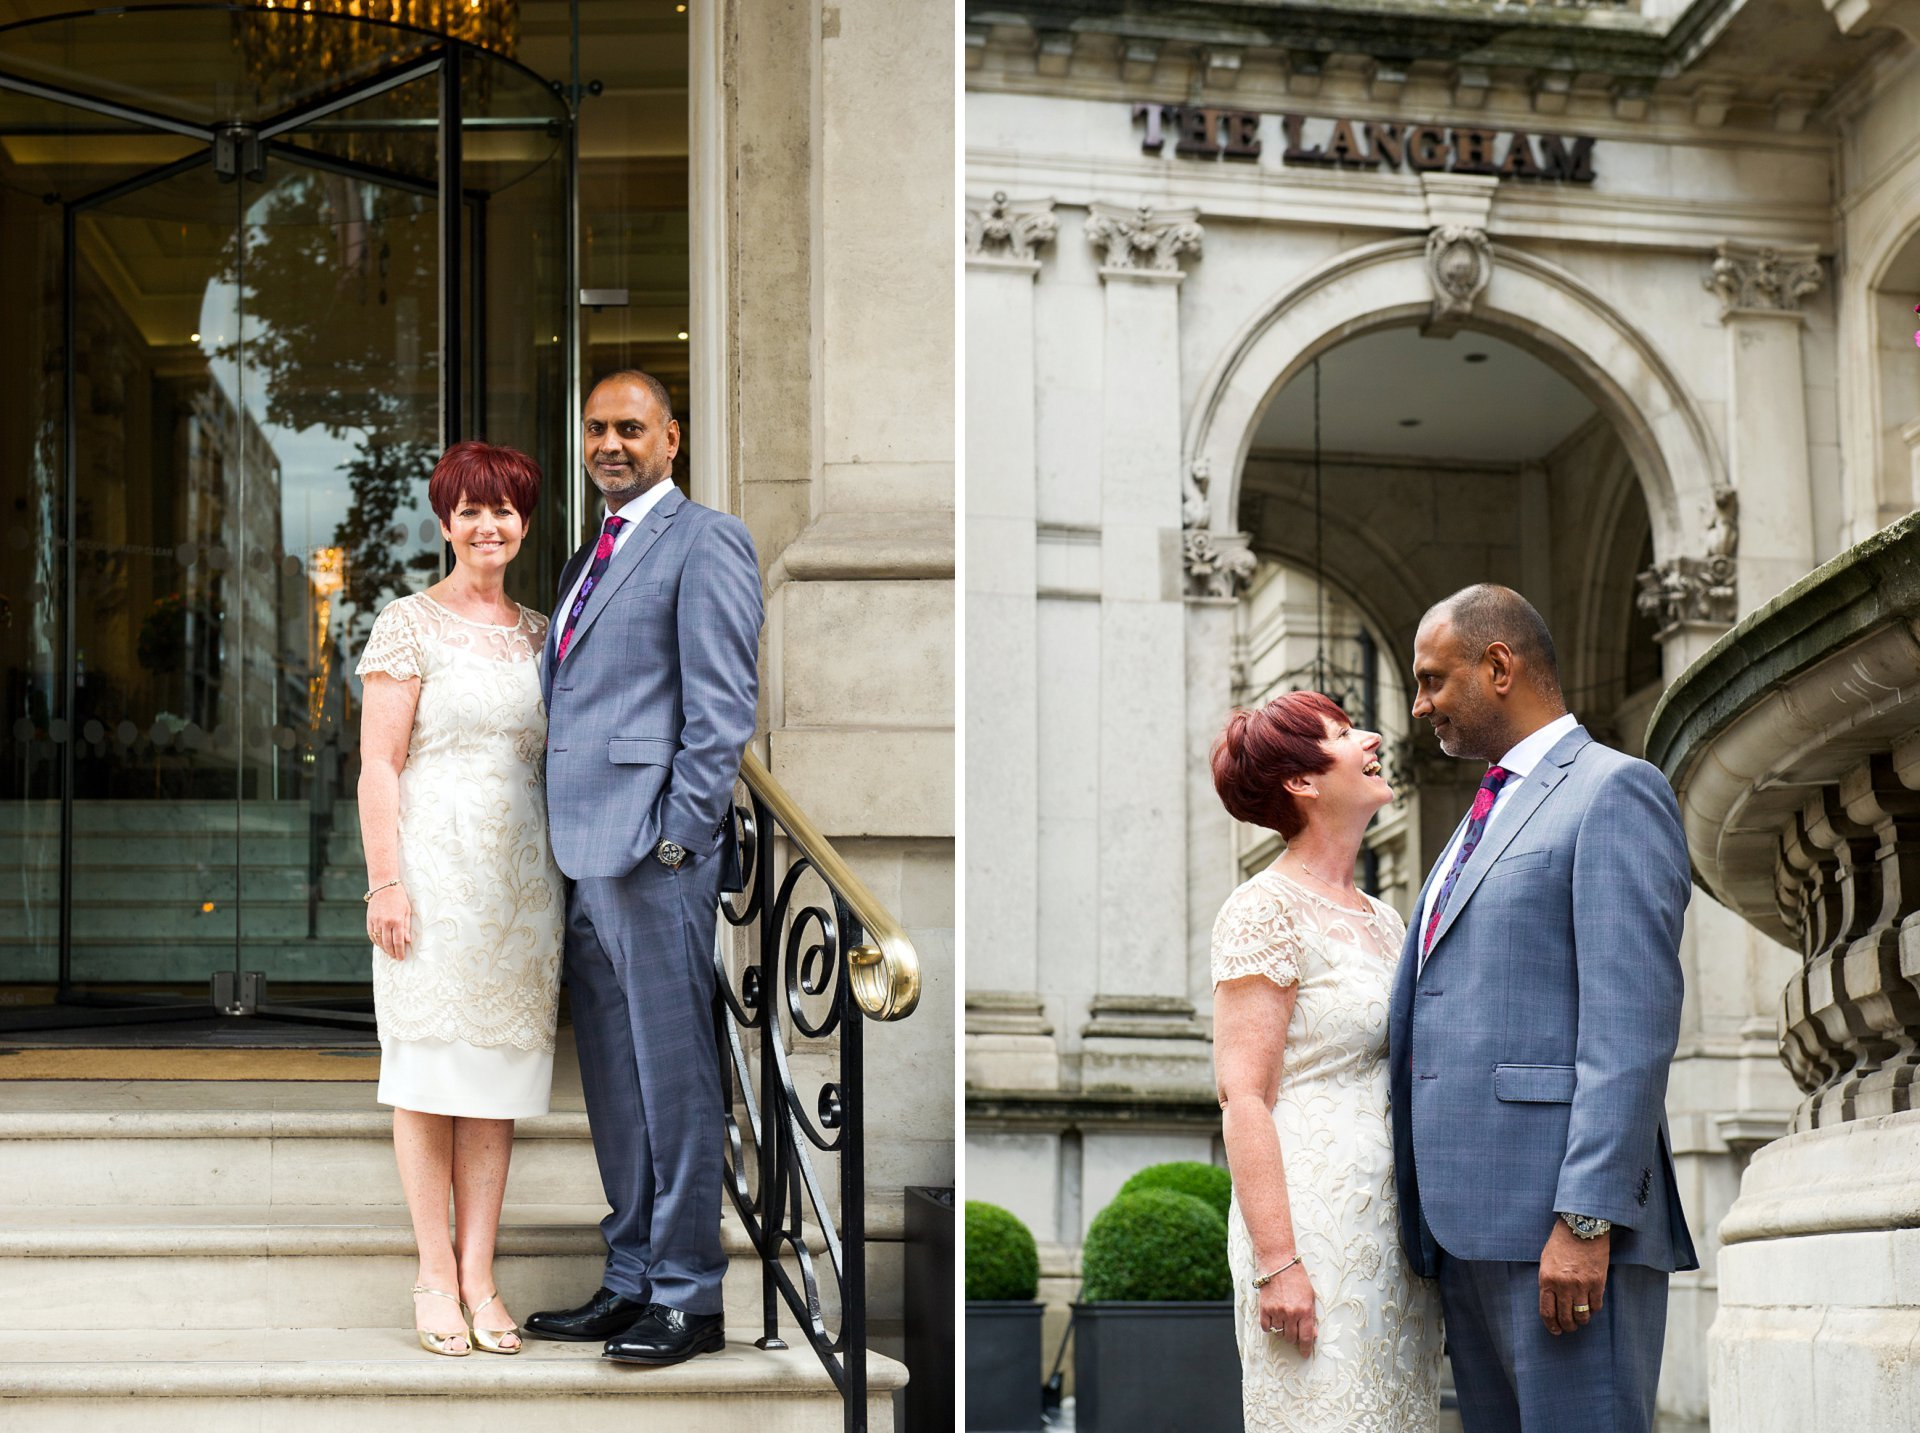 Bride and groom celebrate their wedding reception at the Langham Hotel followed by lunch at Roux at The Landau Restaurant